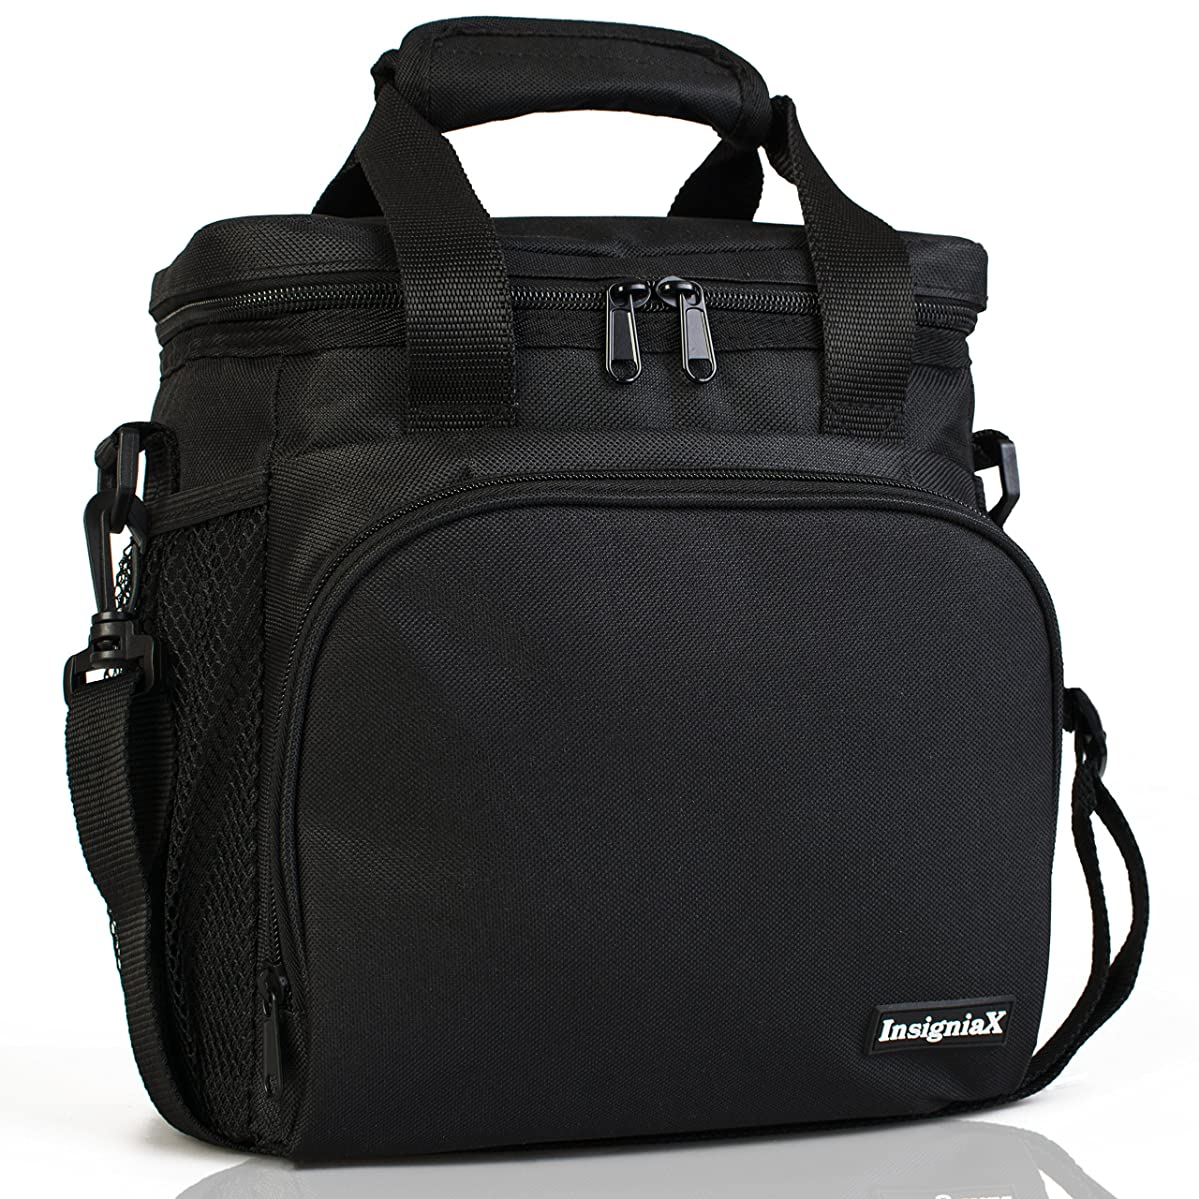 InsigniaX Insulated Lunch Bag S1/S2 Lunch Box/Cooler/Lunchbag for Adult Women Men Work School Picnic Girls Boys with Strap Bottle Holder H: 10